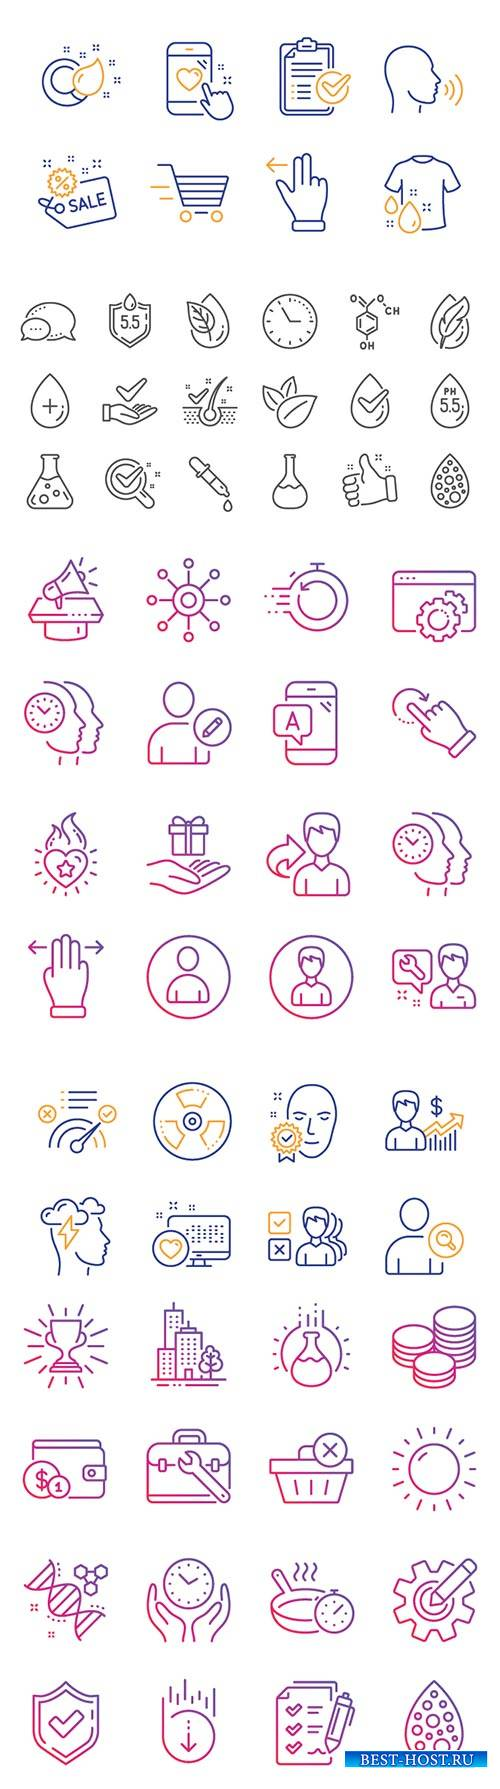 Business vector icons set